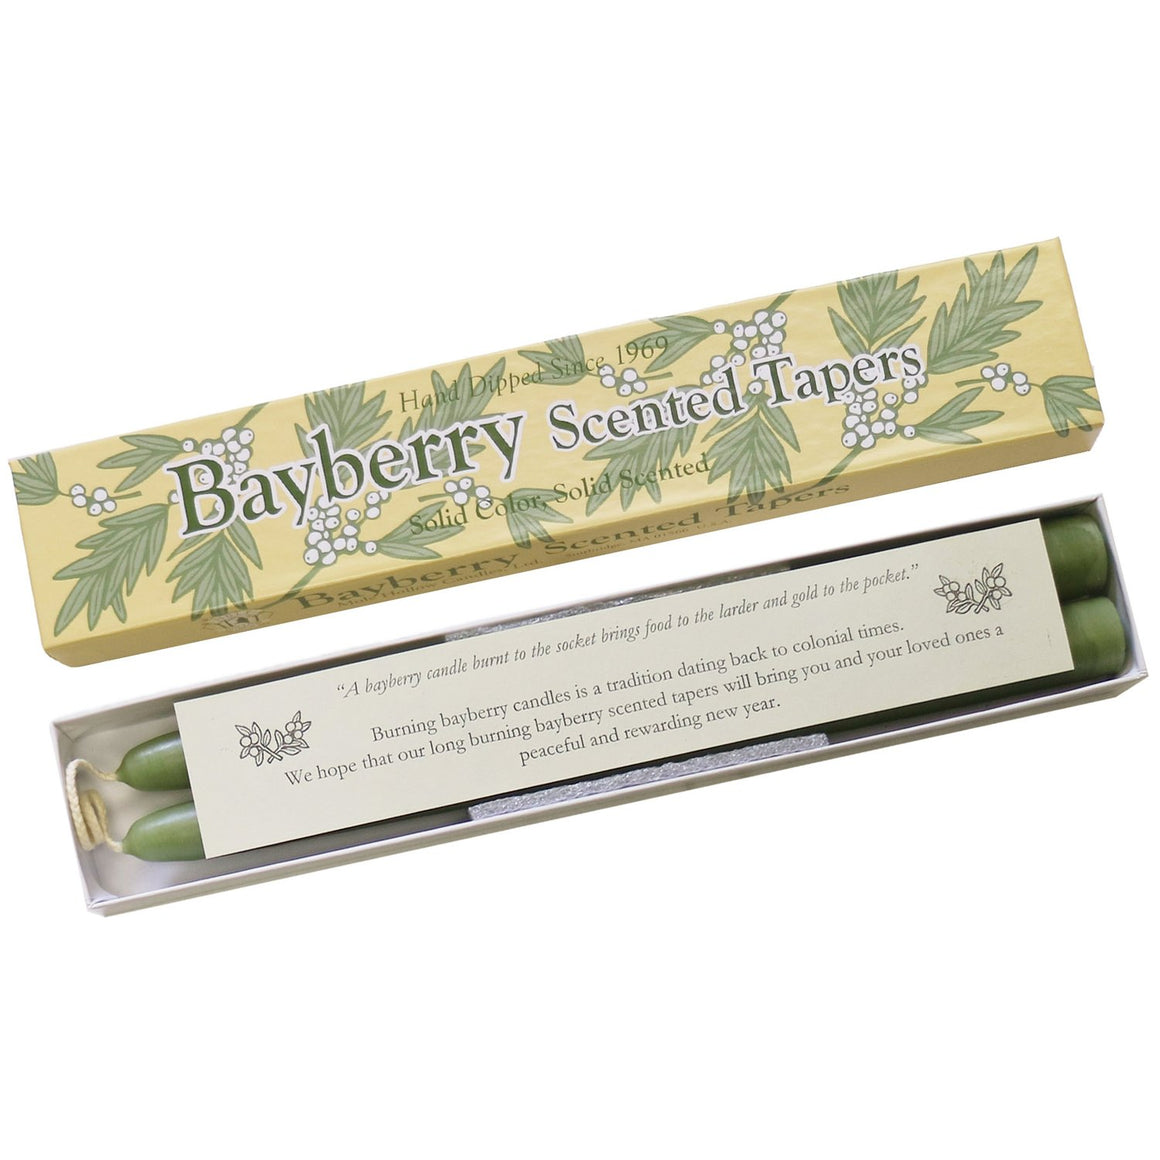 Bayberry Taper Candles, Single-Pair Gift Box